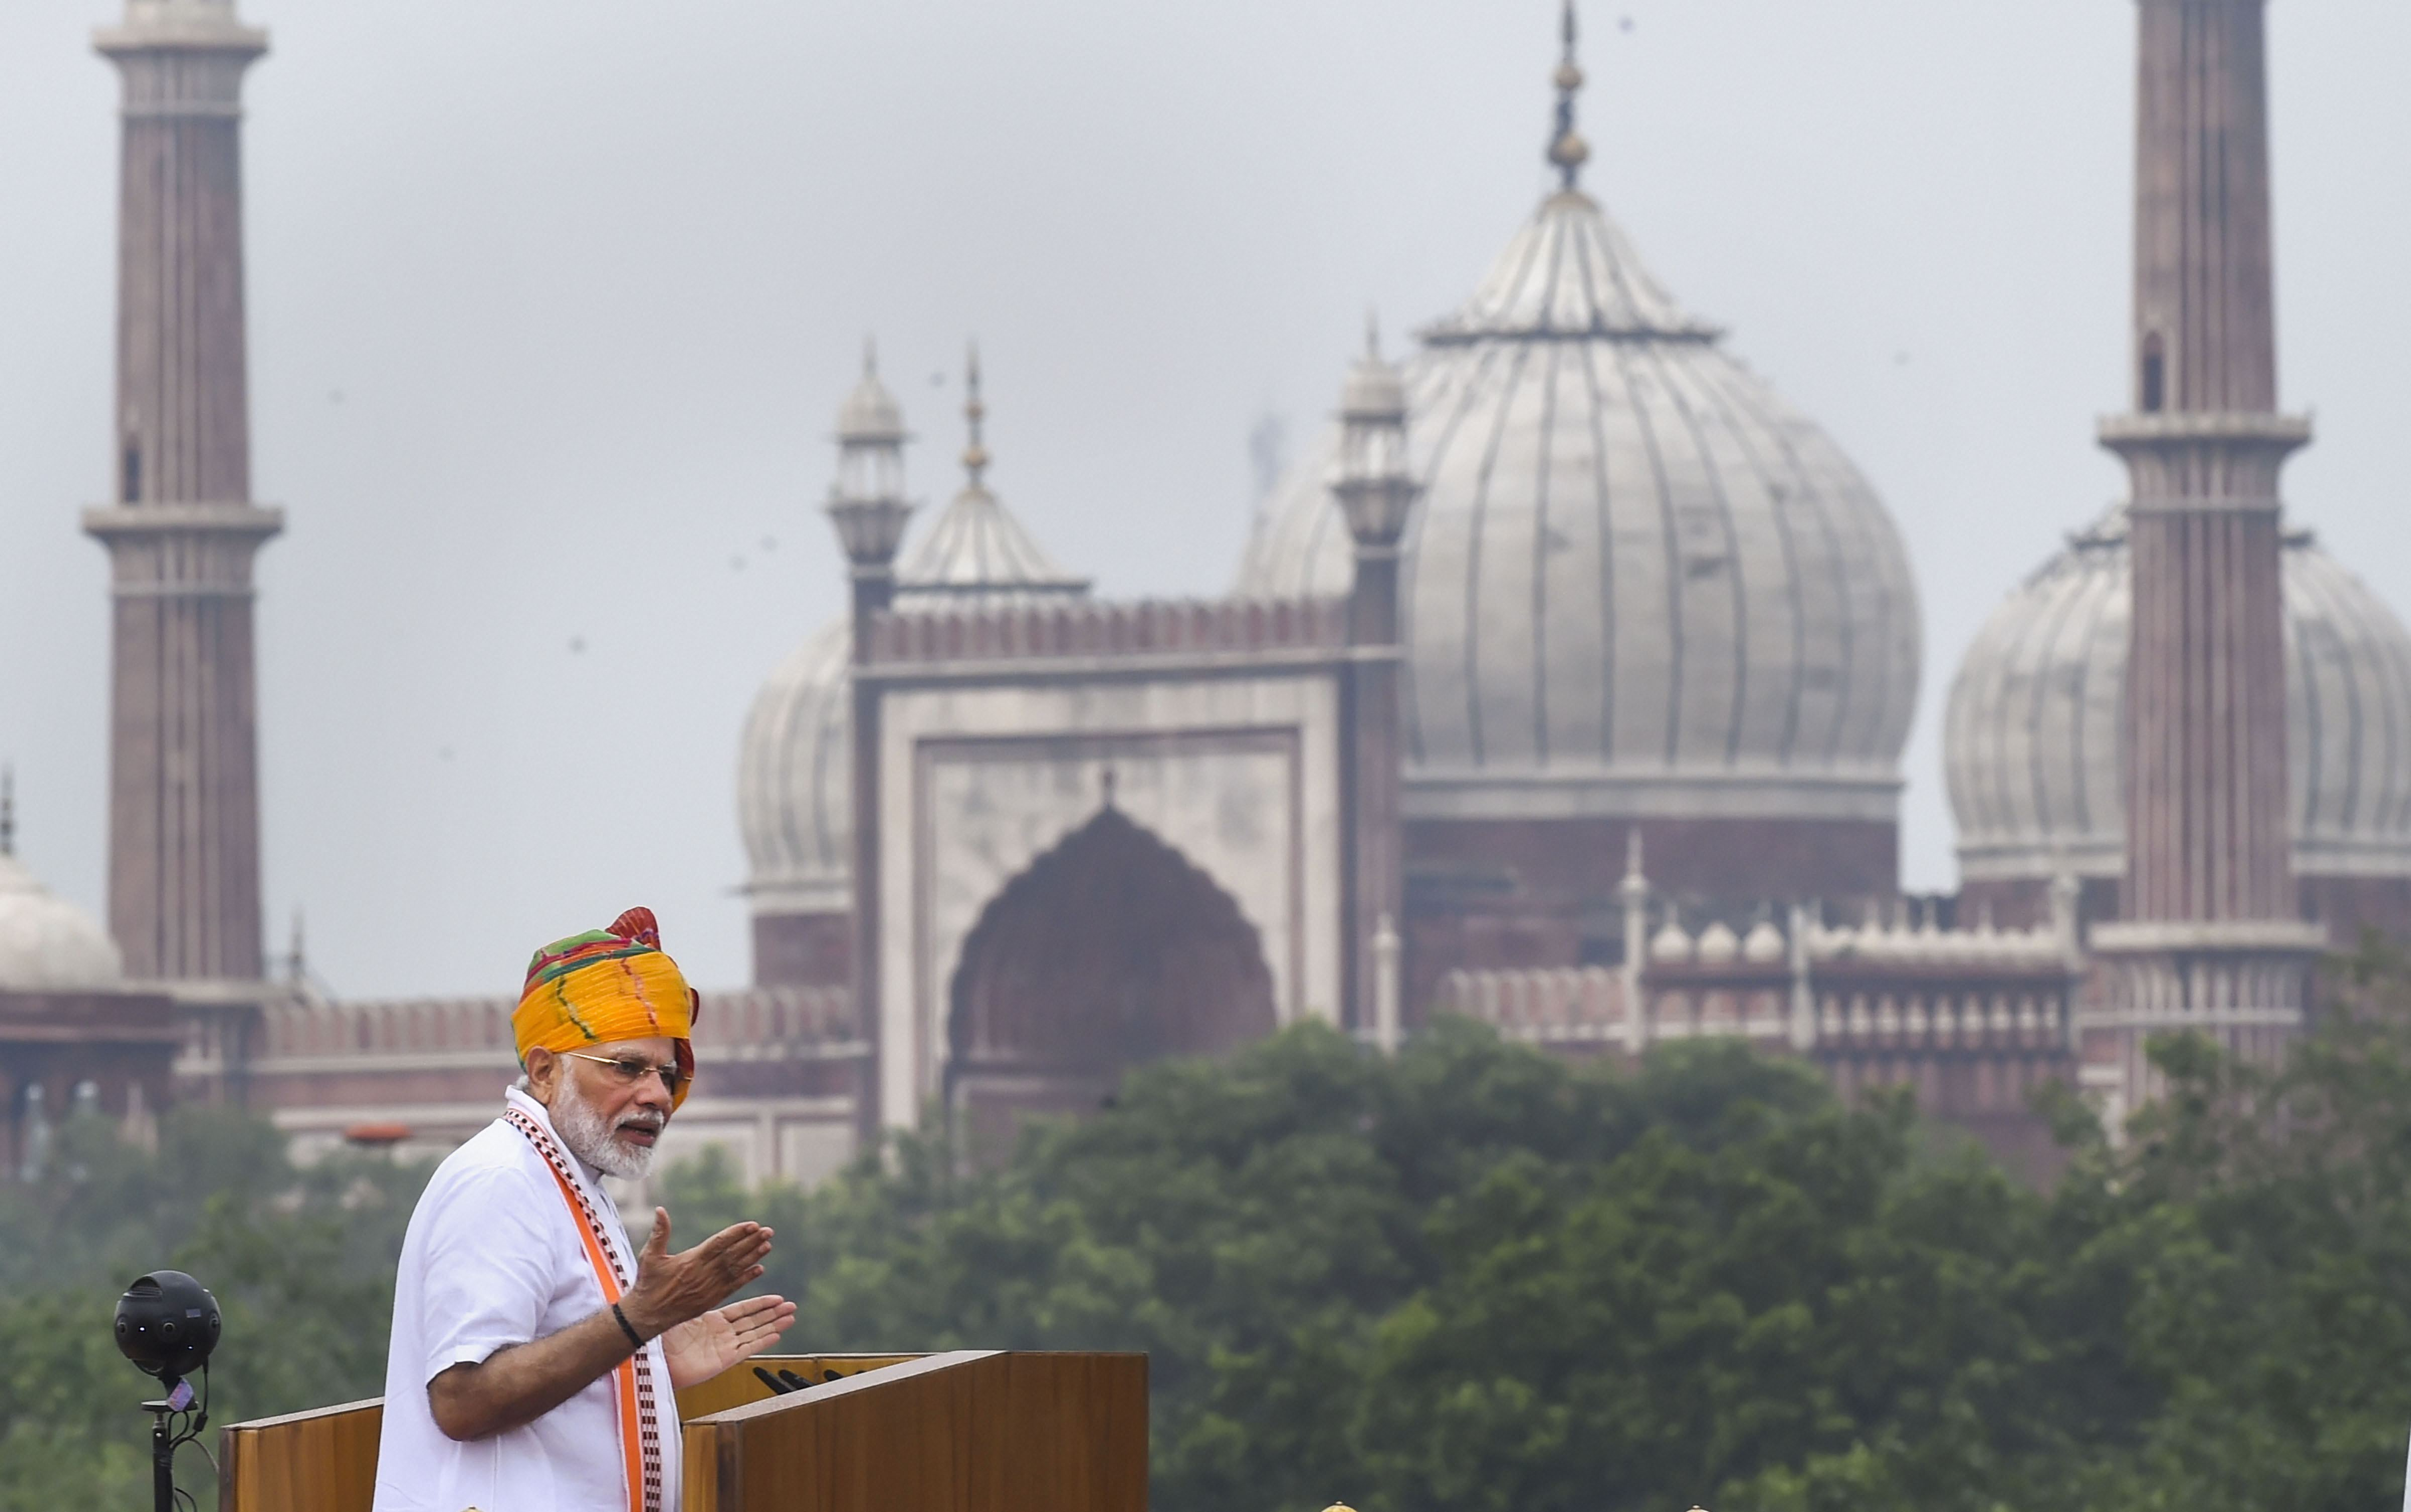 Modi's announcements: Chief of defence staff and piped water plan